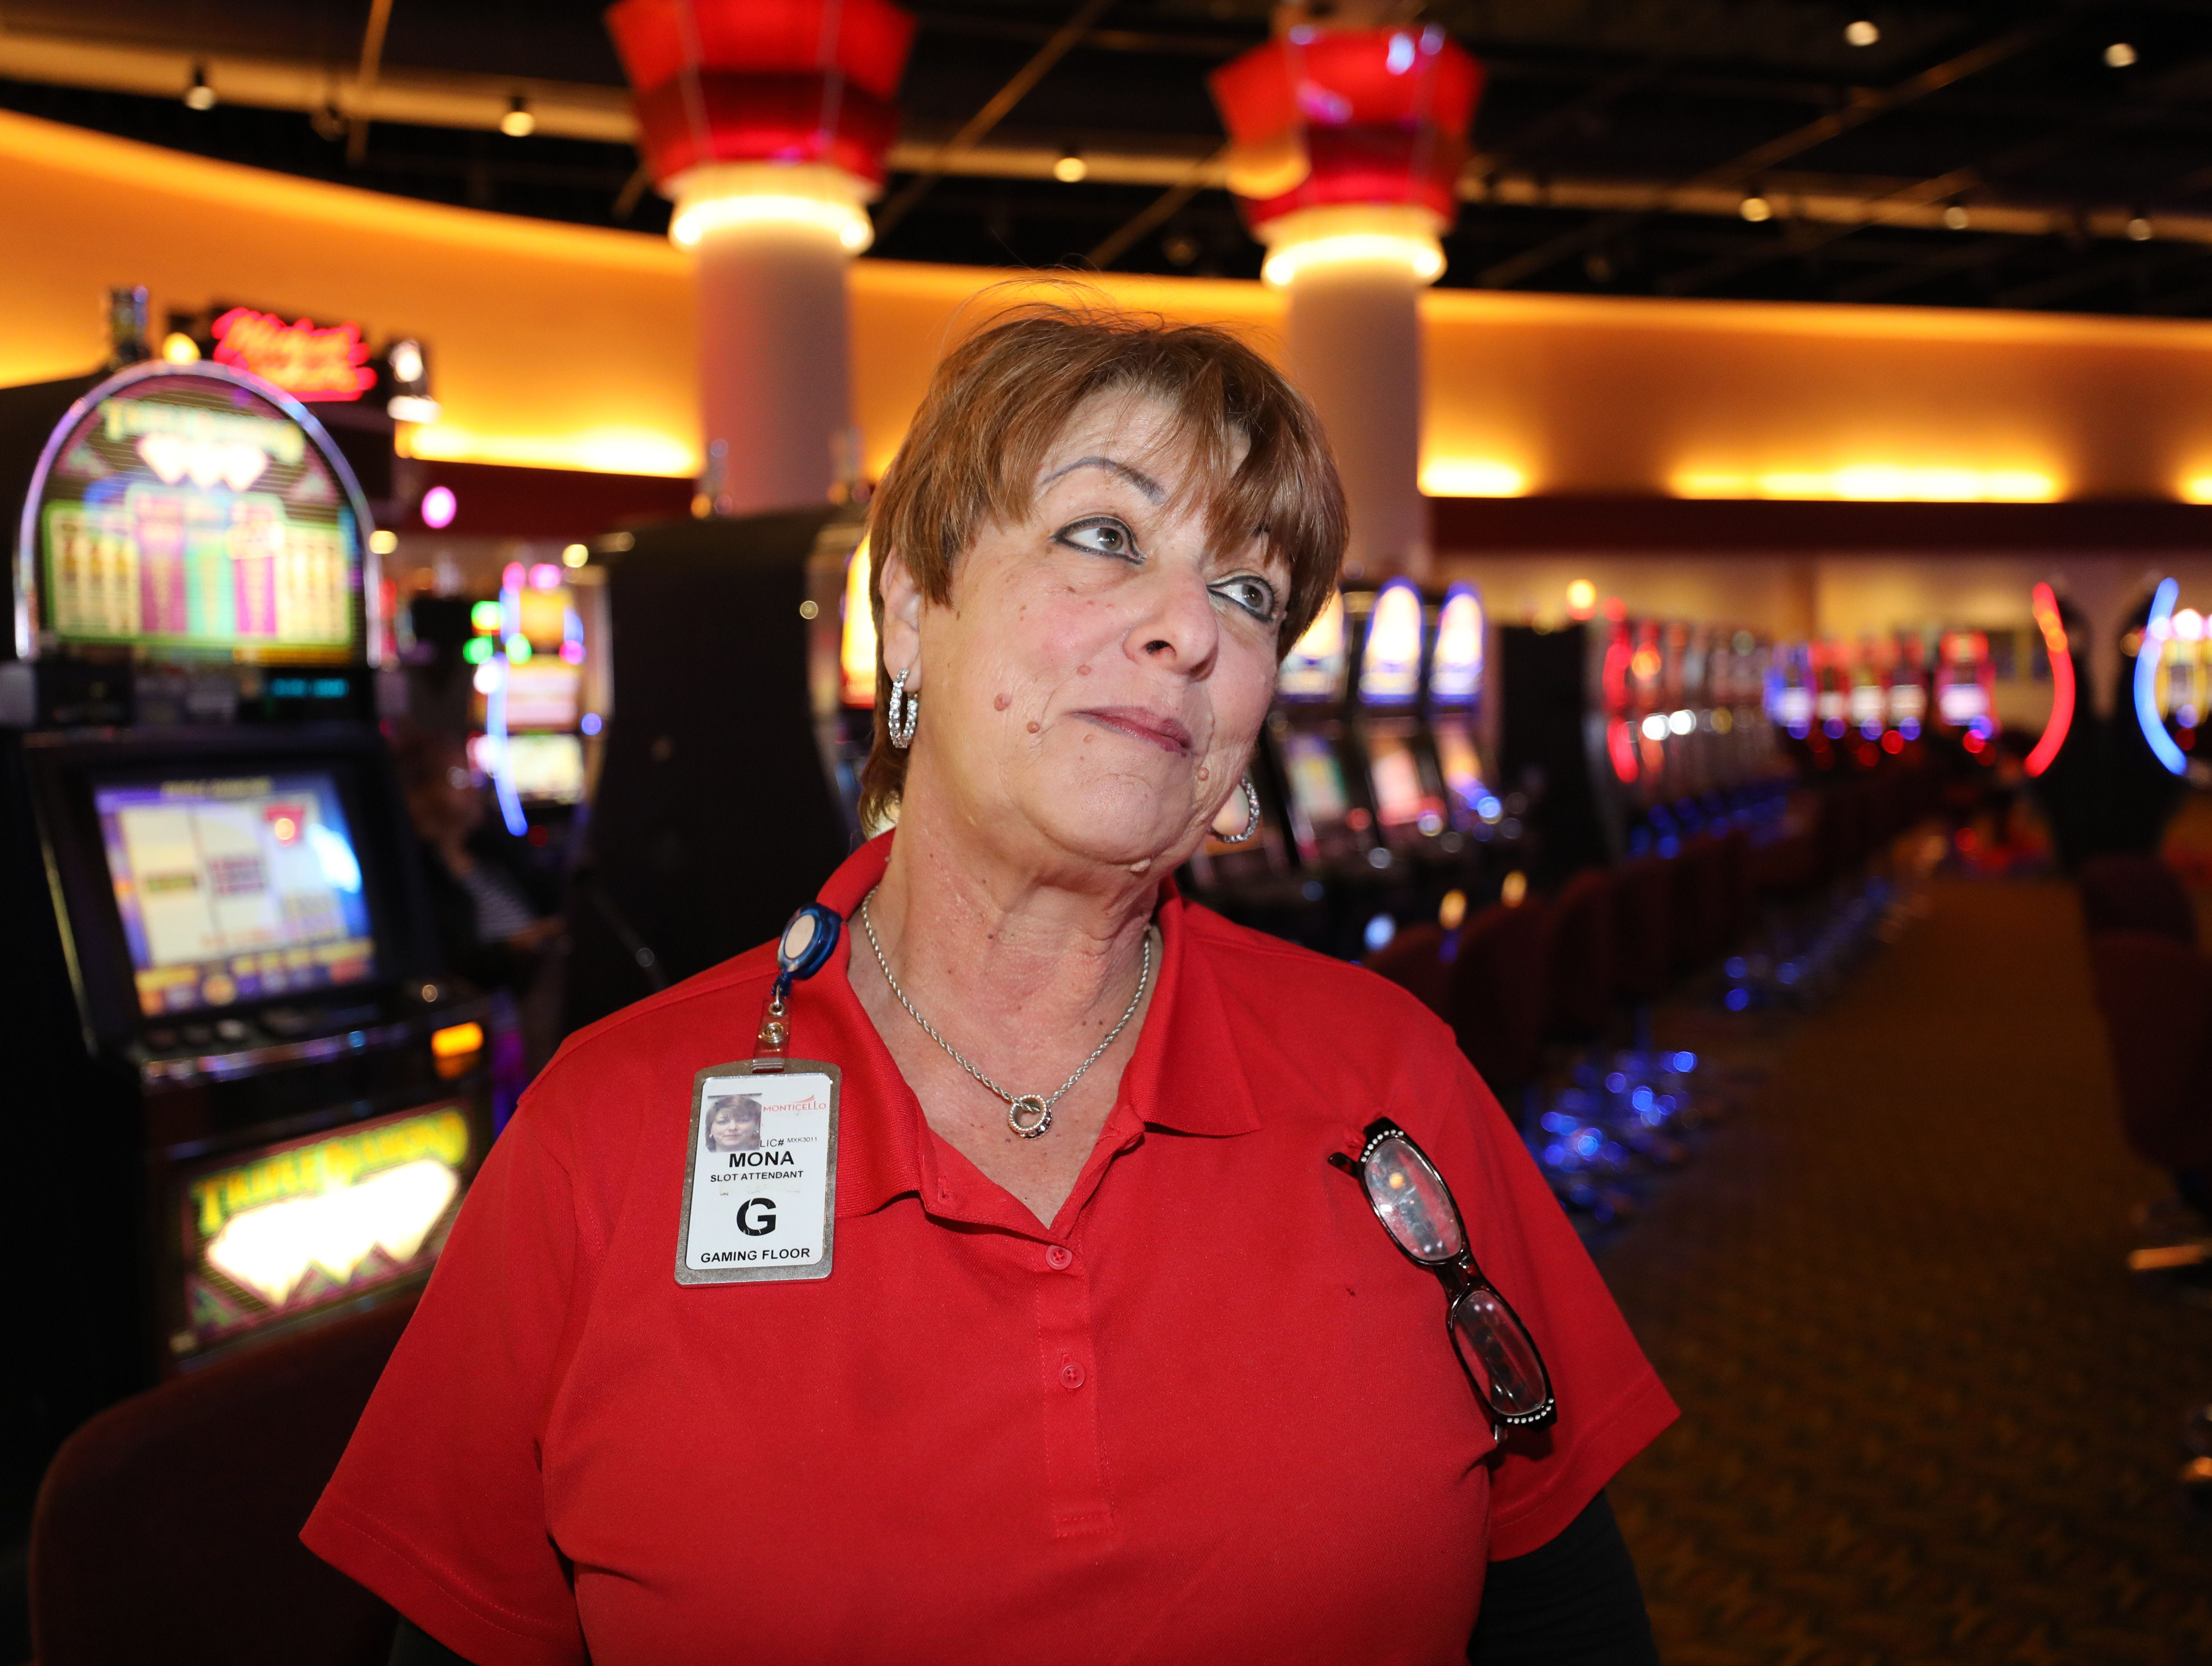 Mona Karasik a slot attendant, talks about the imminent closing of the casino at the Monticello Casino Raceway in Monticello, April 10, 2019.